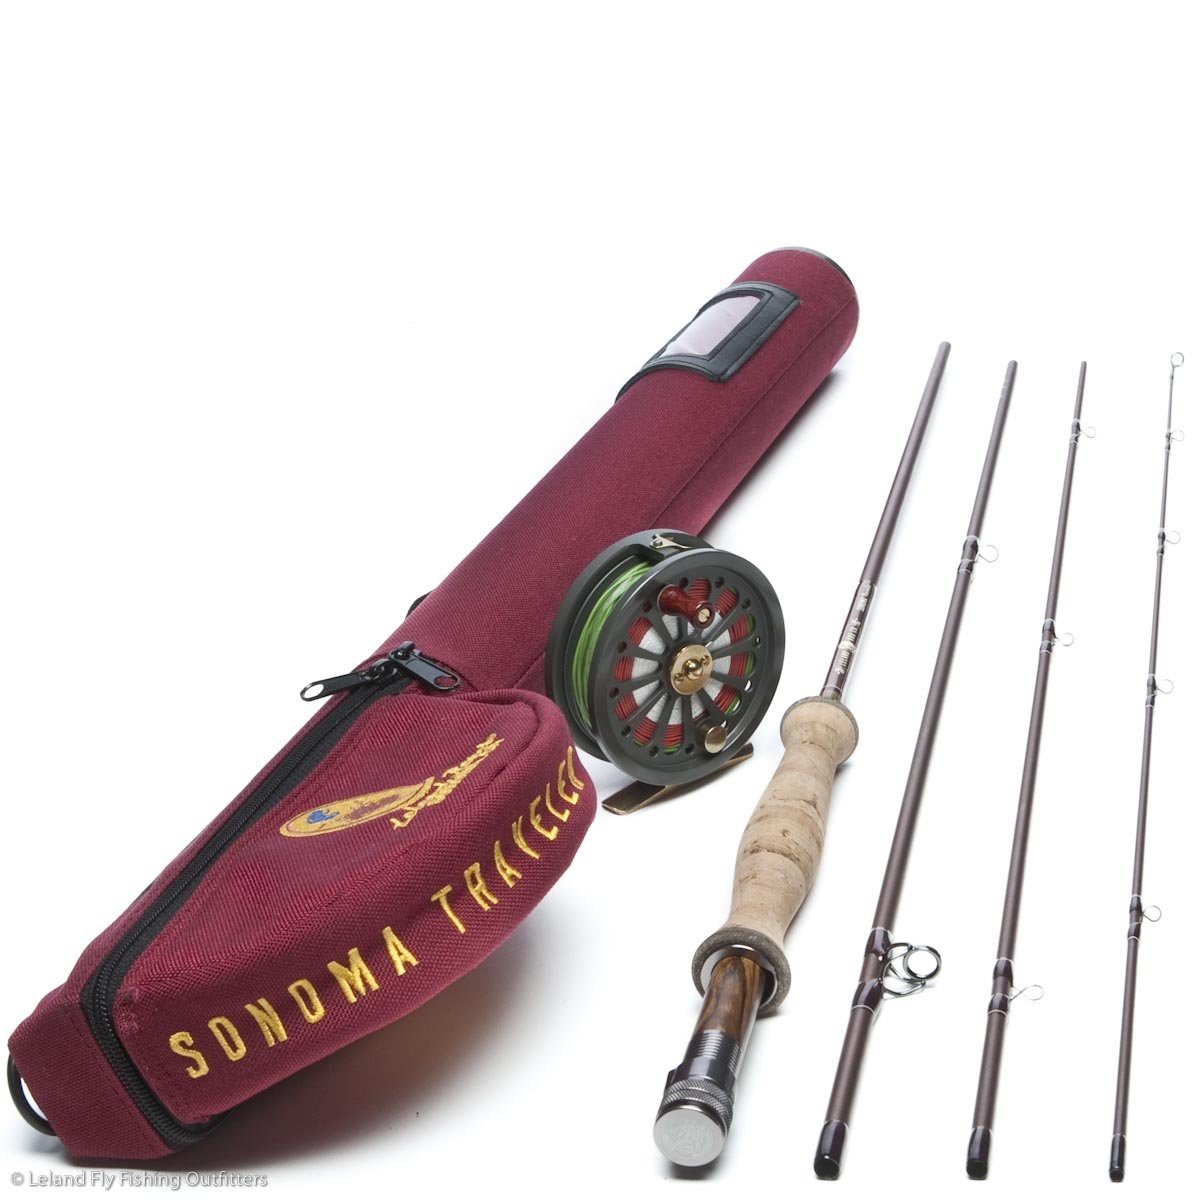 Leland Rod Company Sonoma Traveler Fly Fishing Combo (Professionally Rigged and Ready to Fish) by Leland Rod Company